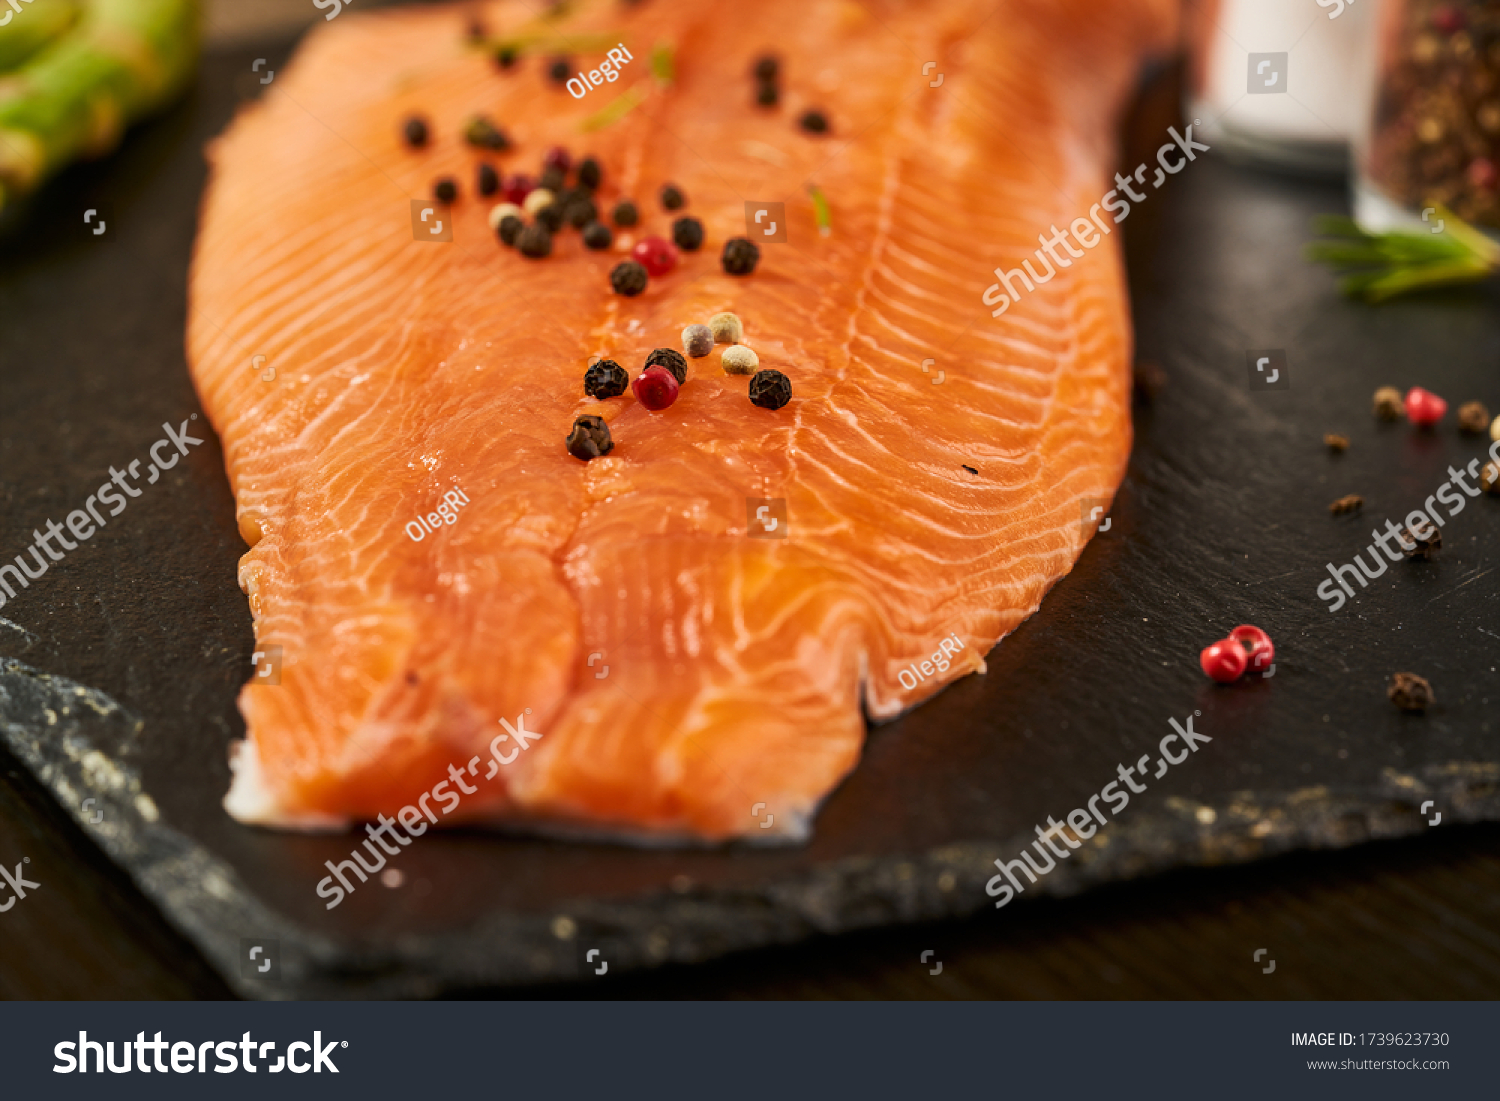 Salmon with black pepper on plate close up. #1739623730